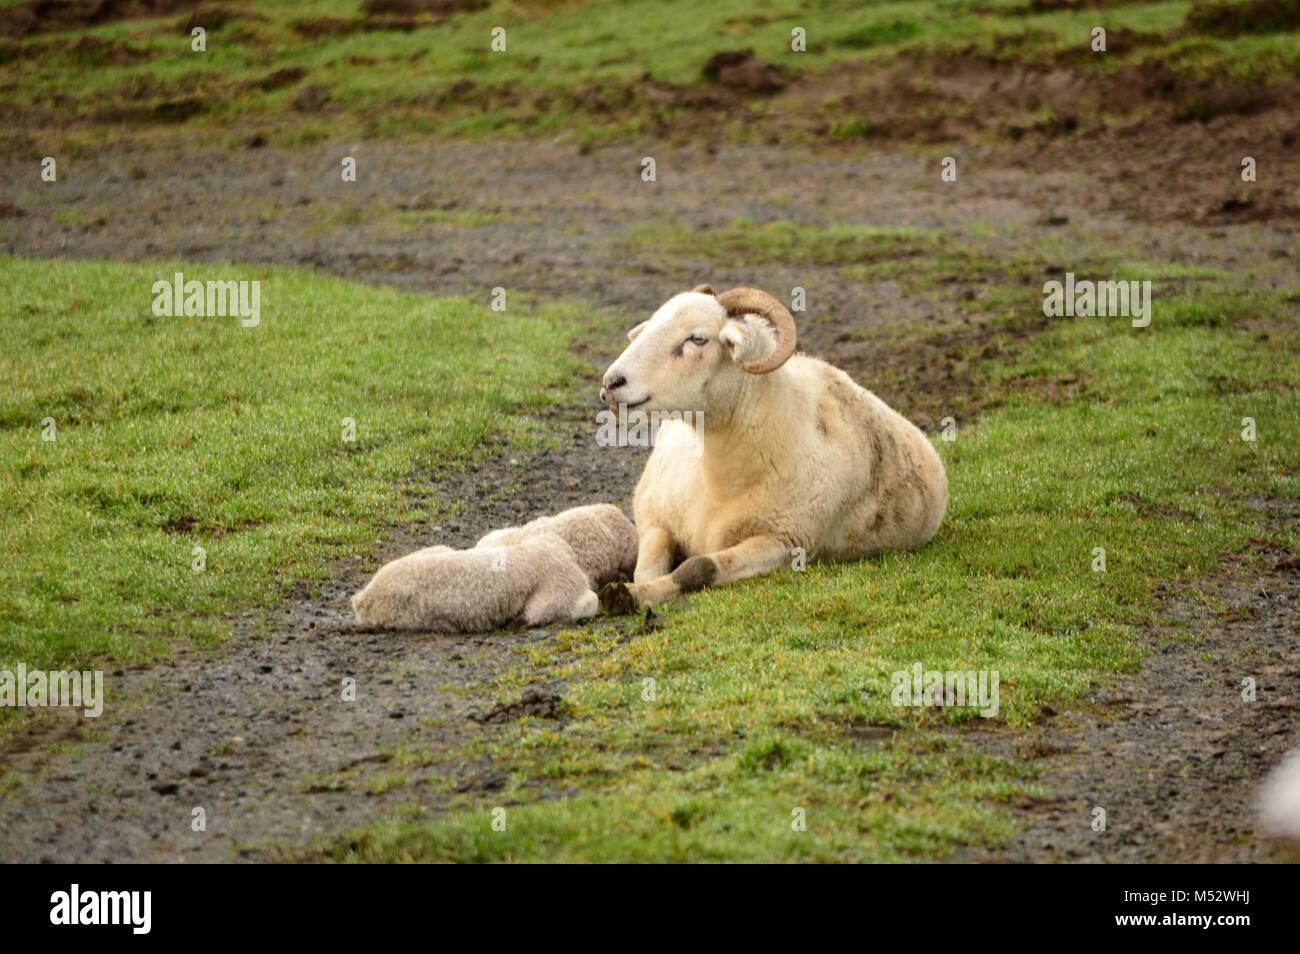 Wiltshire Horn Sheep - Stock Image